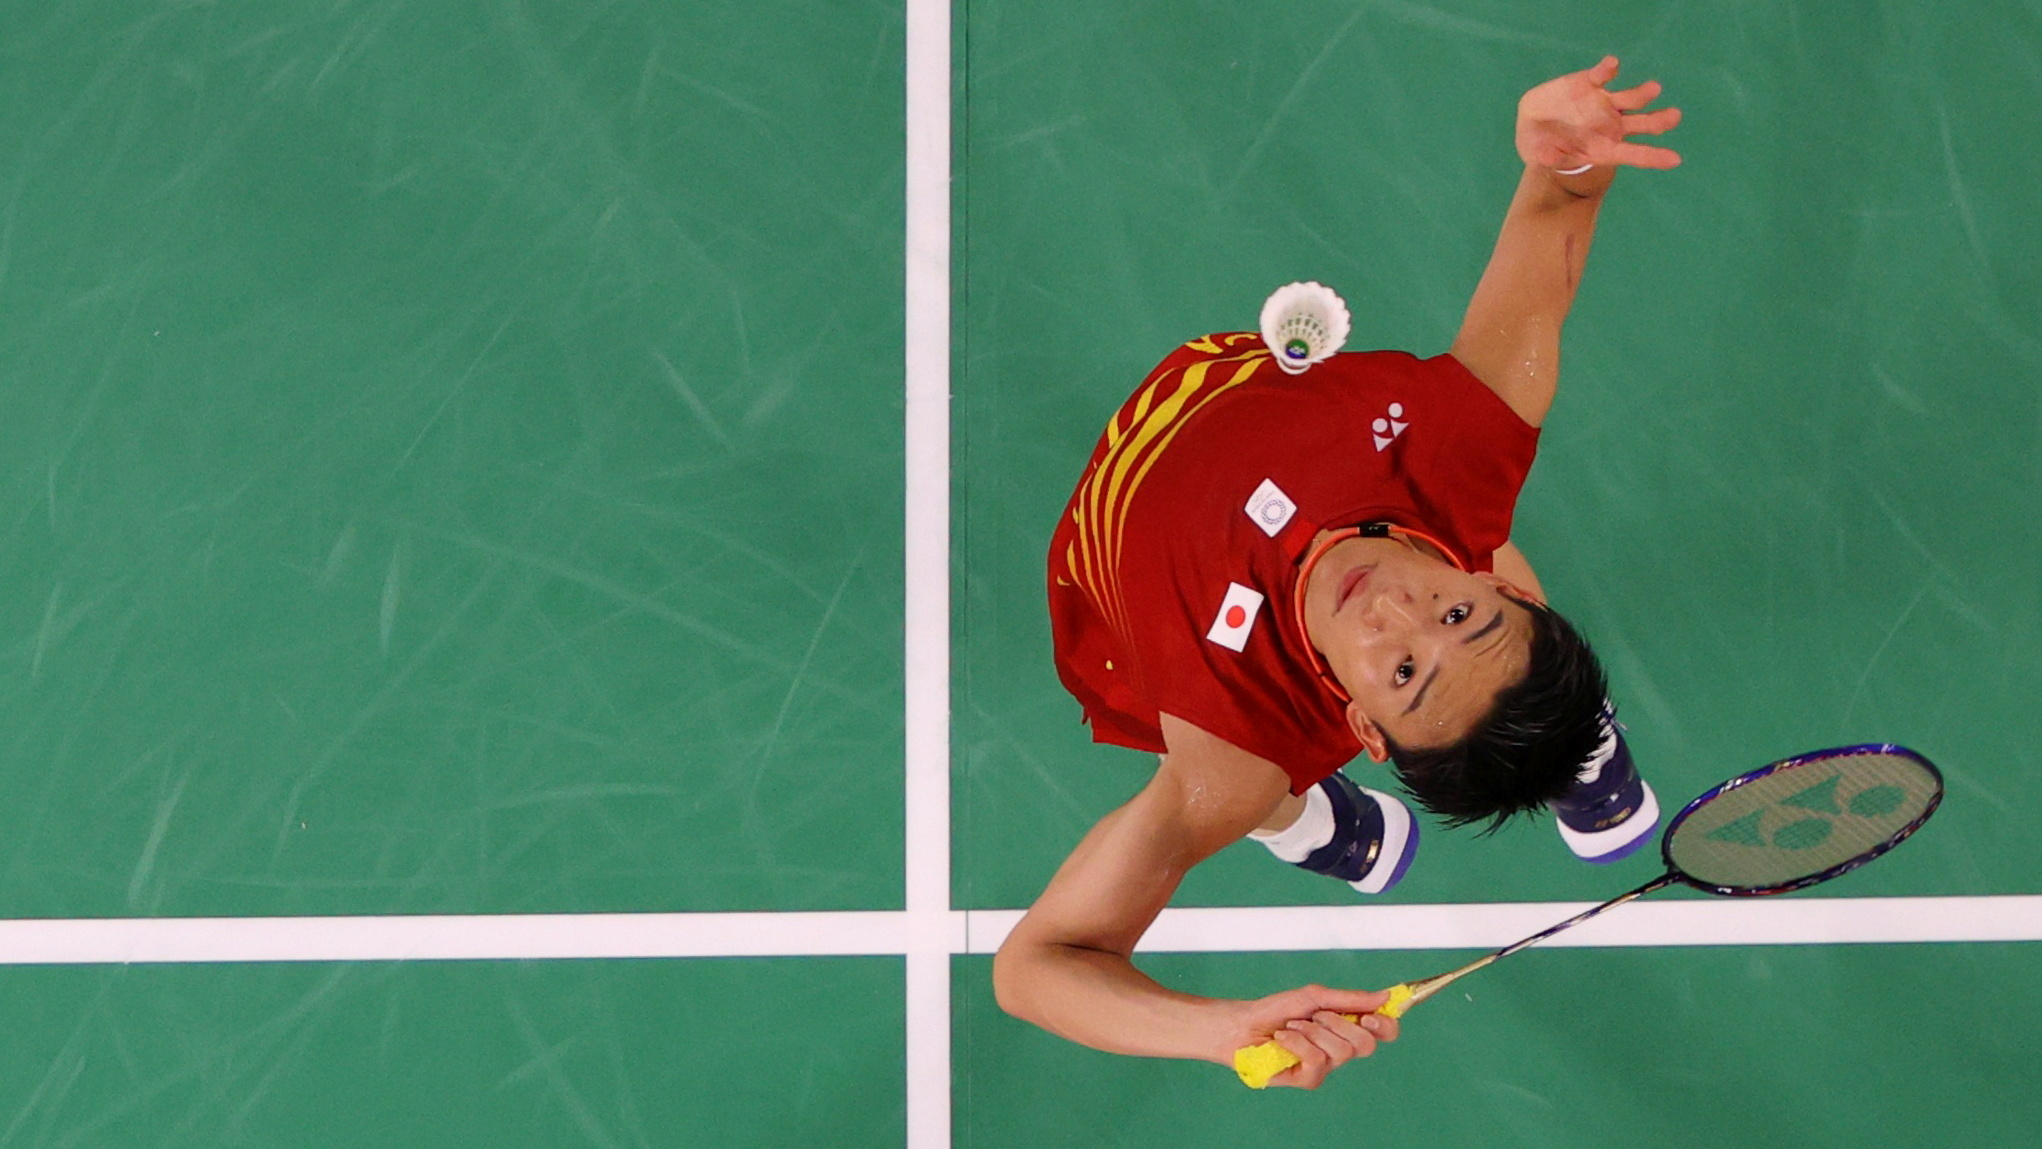 Tokyo 2020 Olympics - Badminton - Men's Singles - Group Stage - MFS - Musashino Forest Sport Plaza, Tokyo, Japan – July 28, 2021. Kento Momota of Japan in action during the match against Heo Kwang-Hee of South Korea. Pool via REUTERS/Lintao Zhang